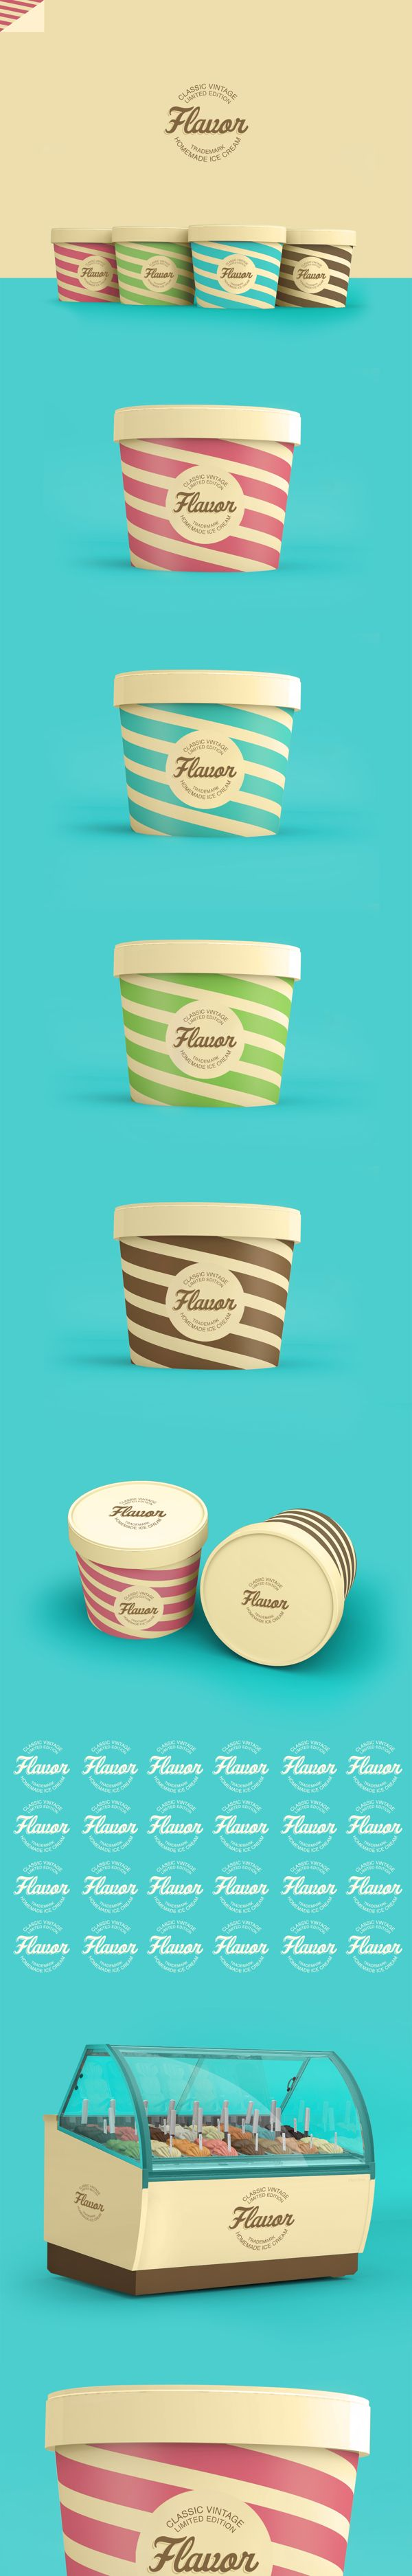 fun packaging design | color scheme | simple | branding | appealing  //  Flavor Ice Cream #Packaging by Renan Vizzotto, via Behance PD